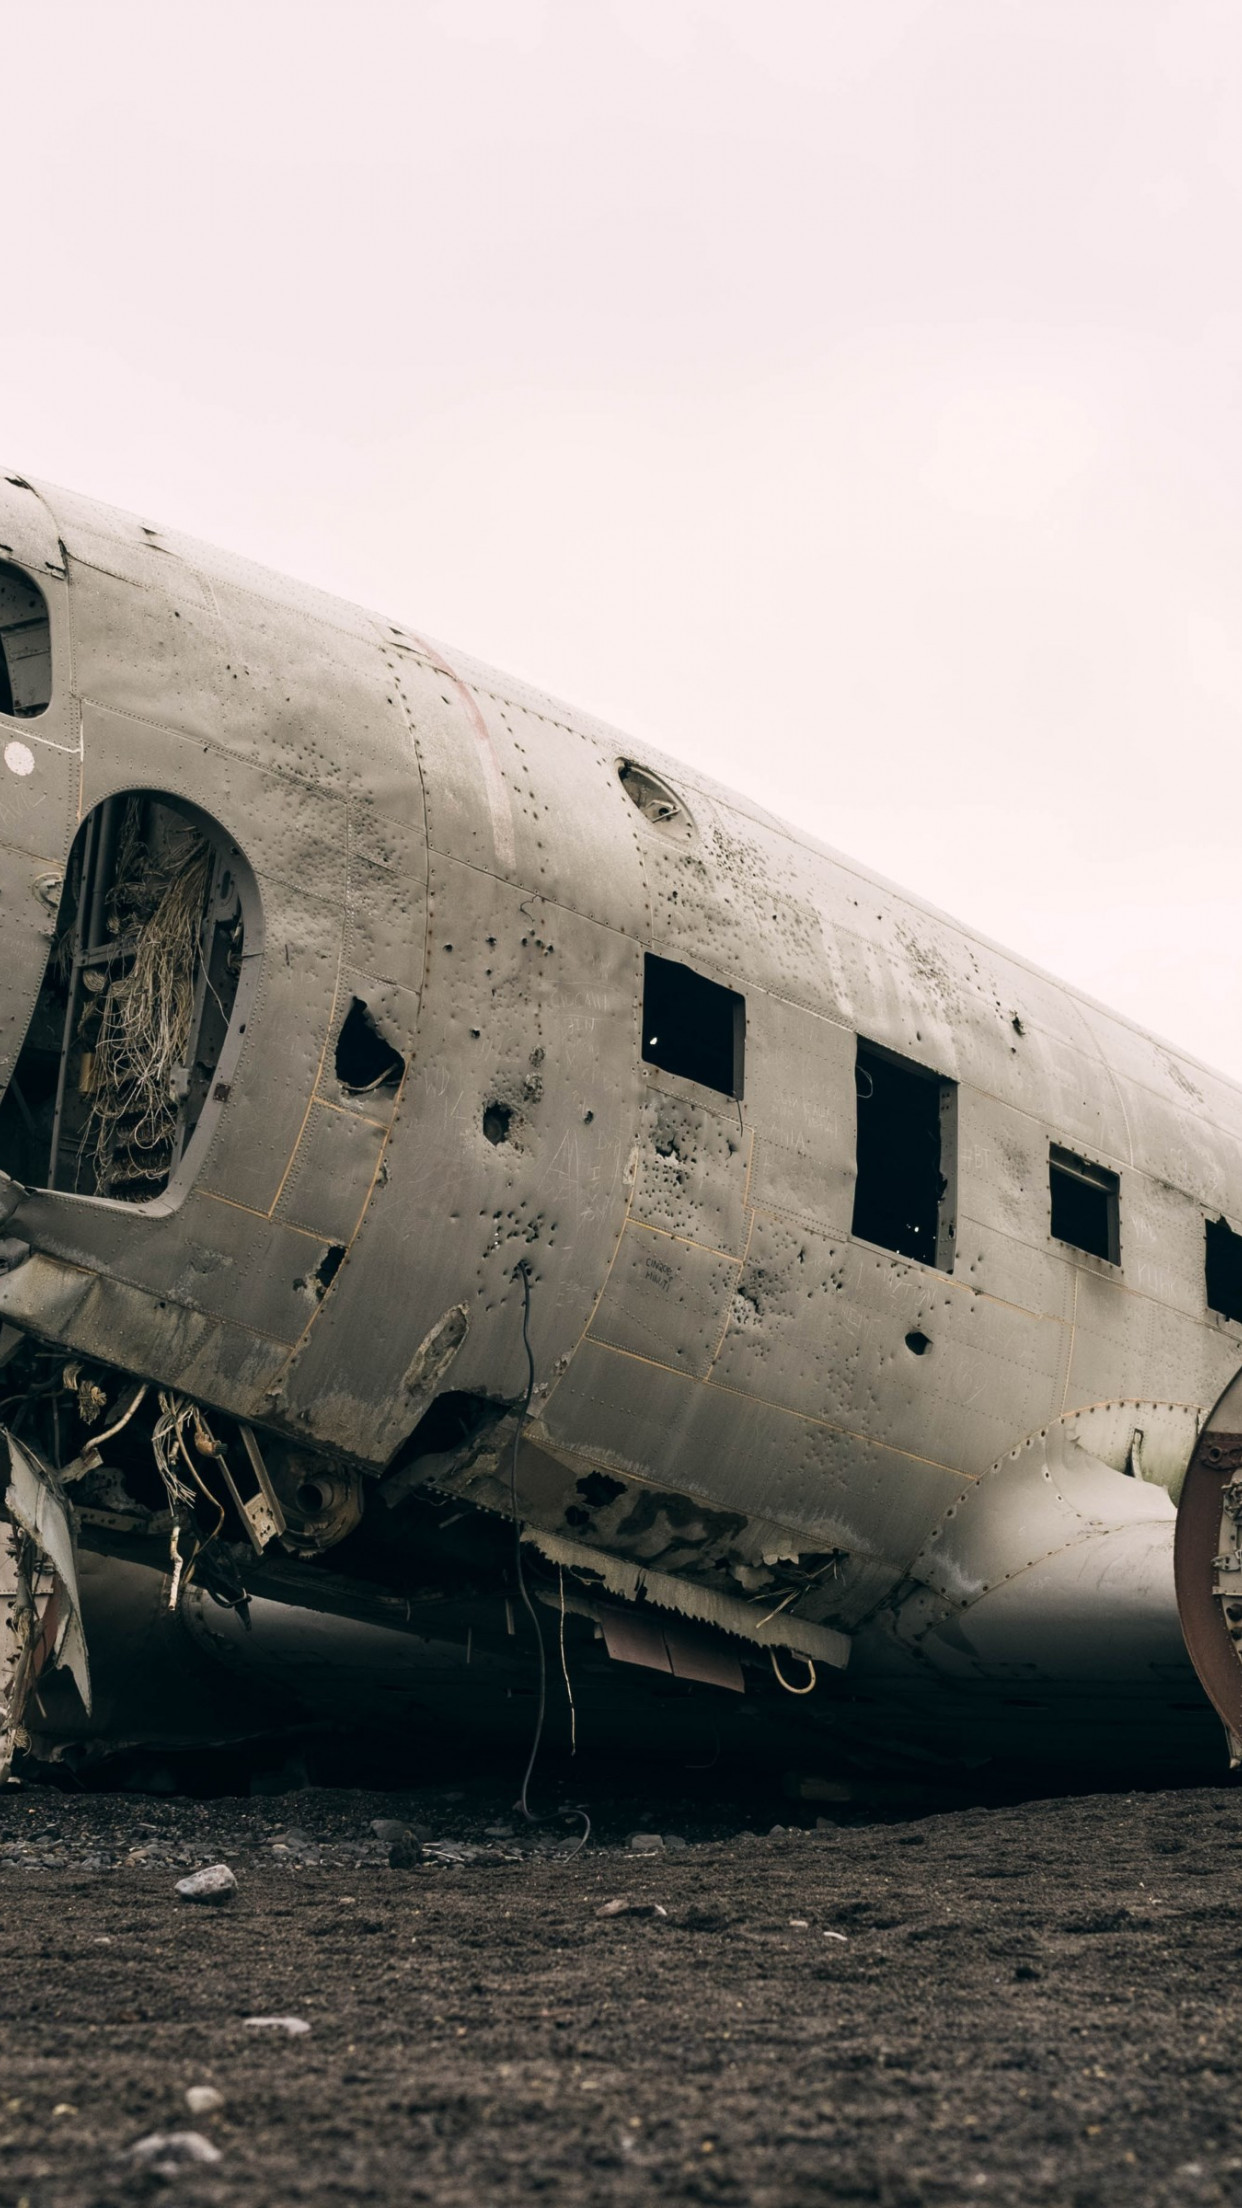 Wrecked airplane wallpaper 1242x2208